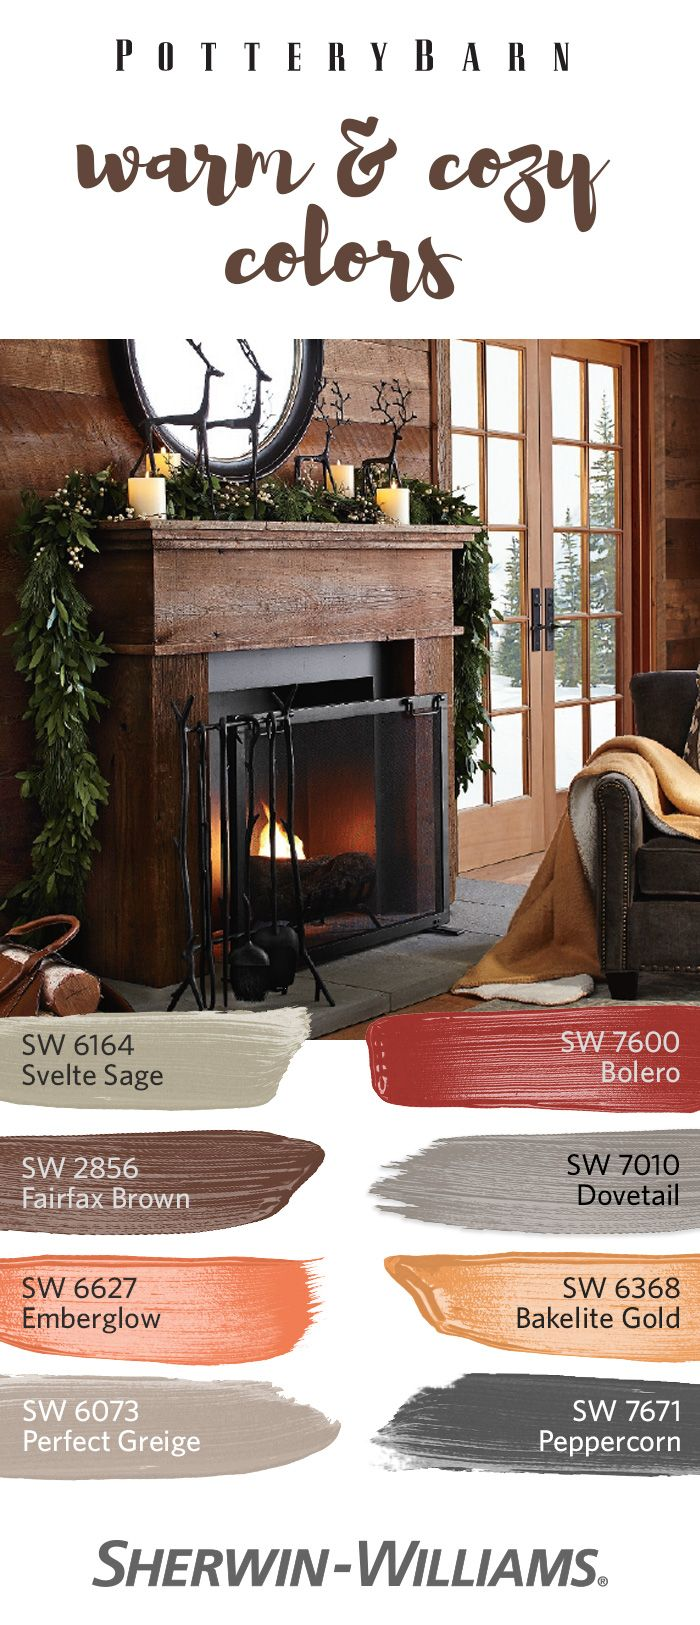 As The Weather Grows Chilly We Start To Look For More Ways Keep Things Cozy Warm Up Your Home With Rich Tones Like Bolero SW Fairfax Brown 2856 And